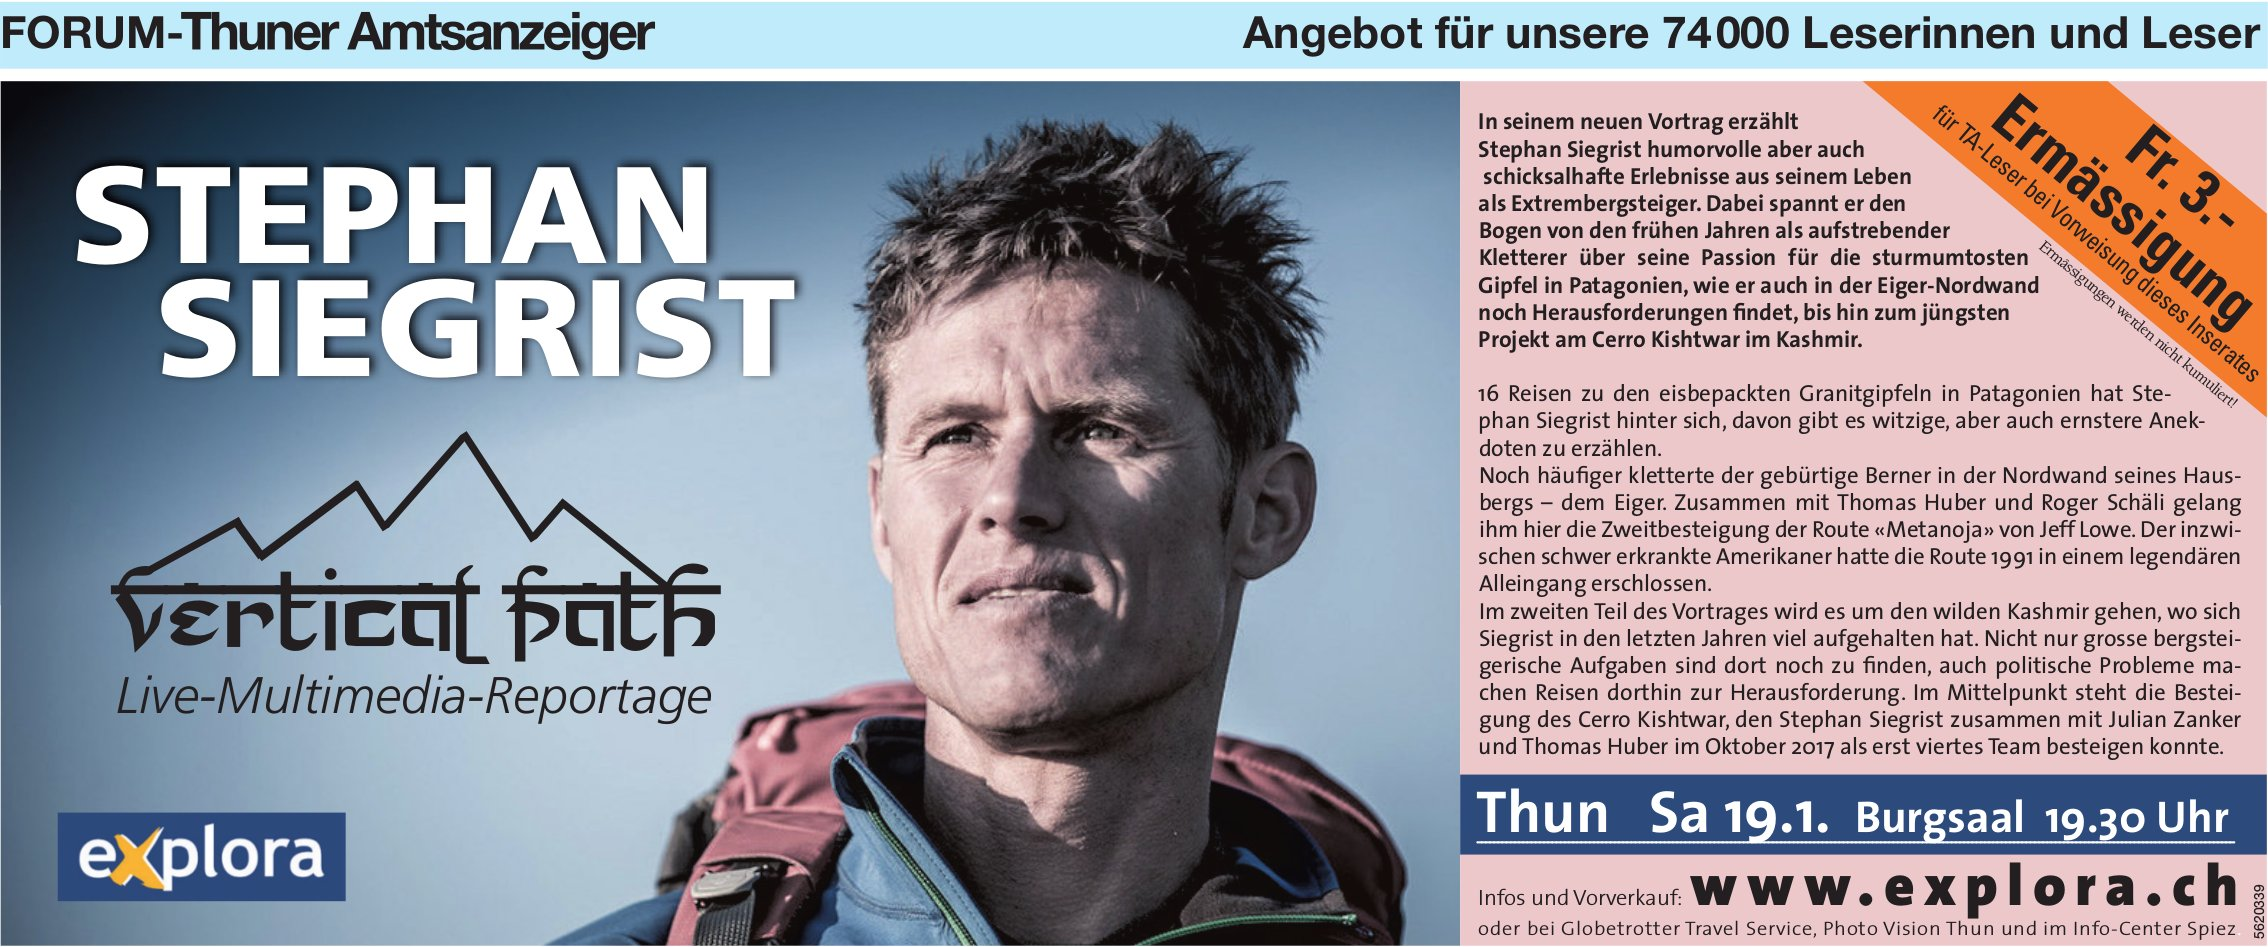 "Forum-Thuner Amtsazeiger - Stephan Siegrist: ""Vertical Path"", Live-Multimedia-Reportage am 19. Jan."